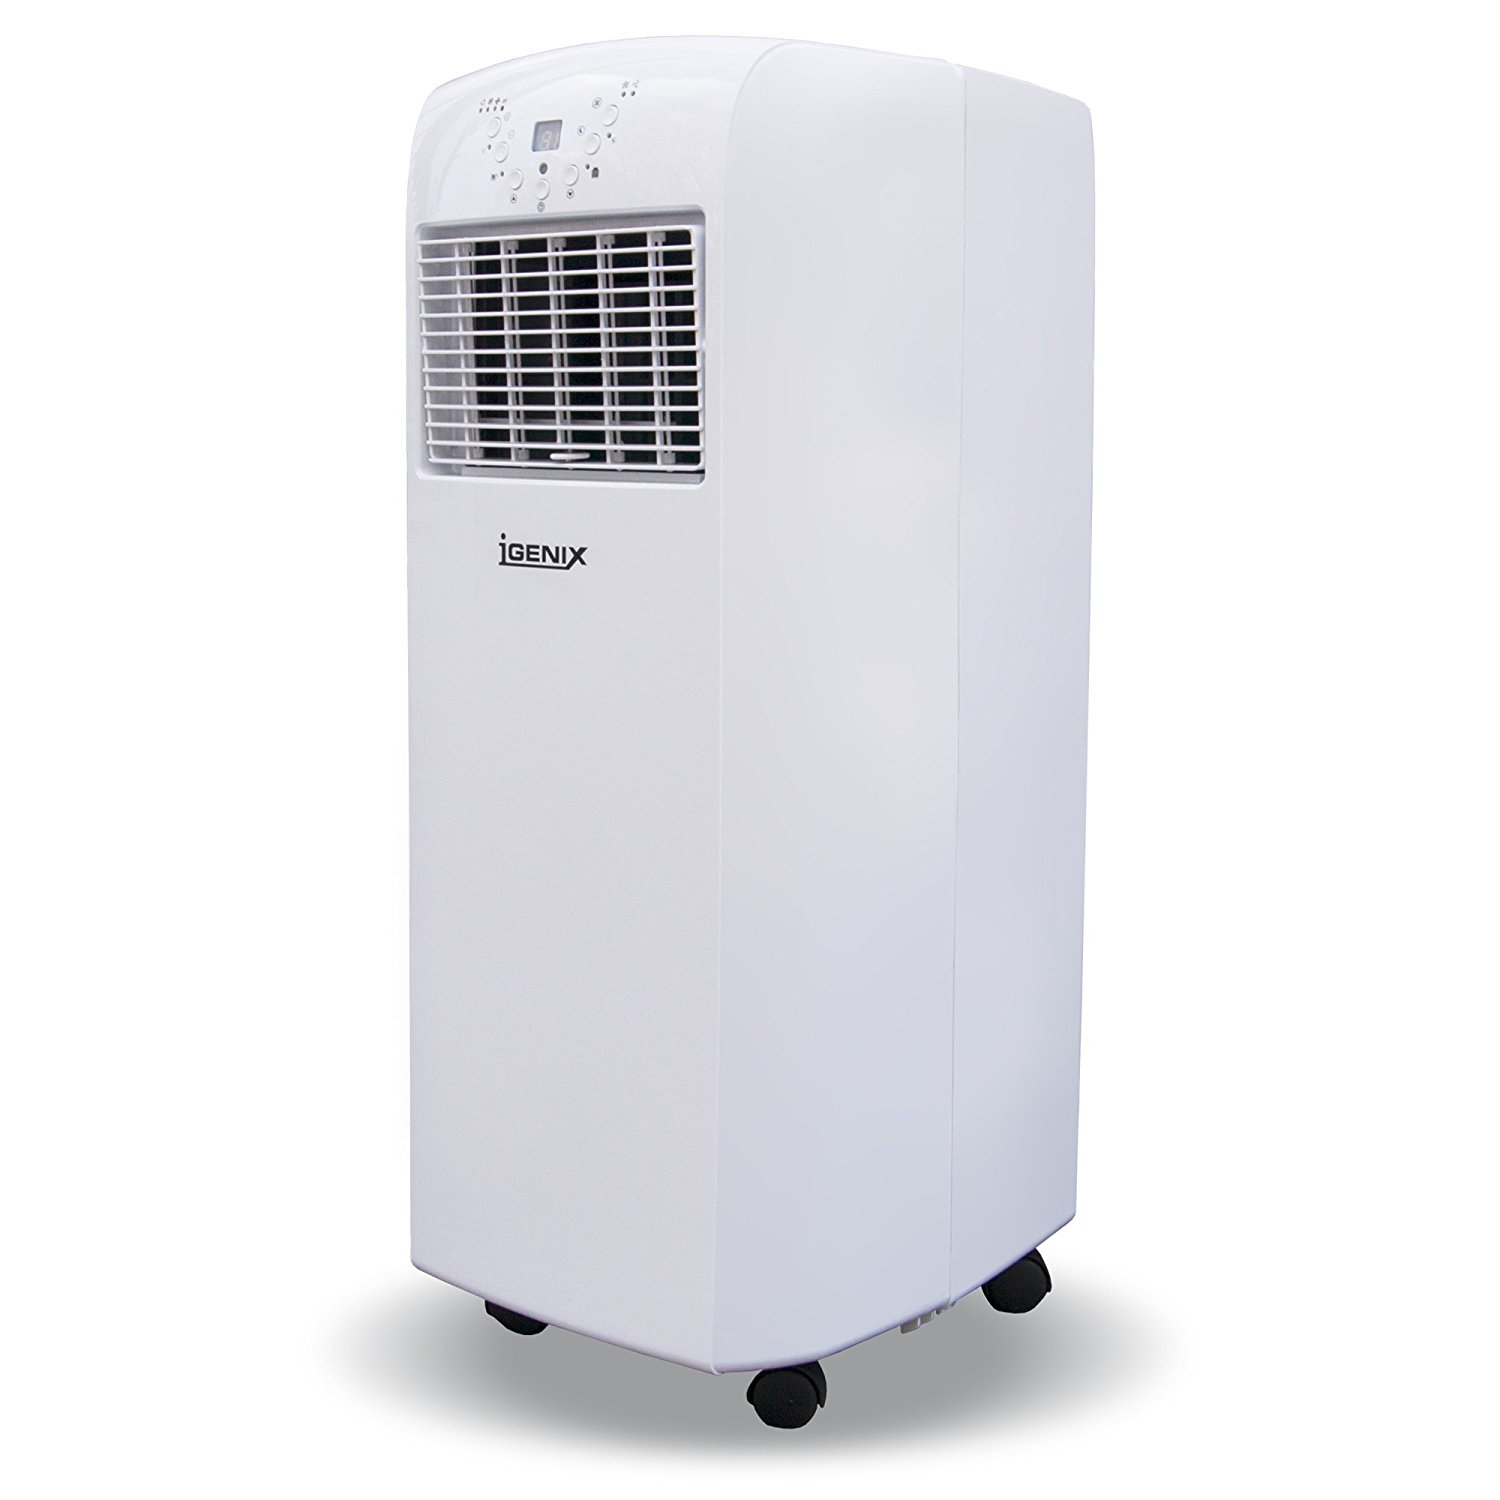 #585F73 Review Of The Igenix IG9902 Portable Air Conditioner Recommended 10937 Air Conditioning Unit Portable pics with 1500x1500 px on helpvideos.info - Air Conditioners, Air Coolers and more